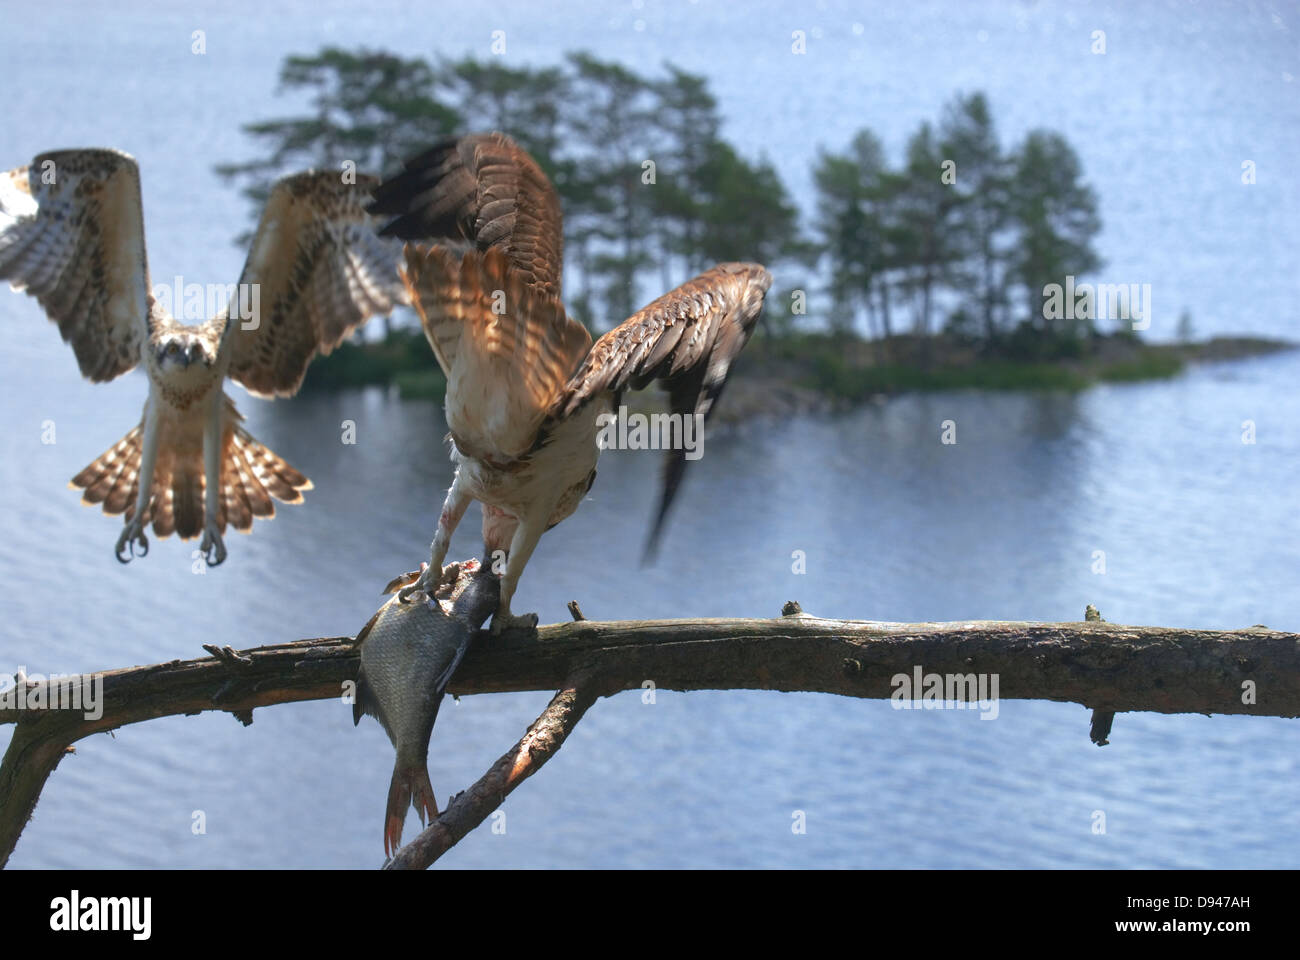 Handover of fish from female to male osprey, Halden, Norway. - Stock Image